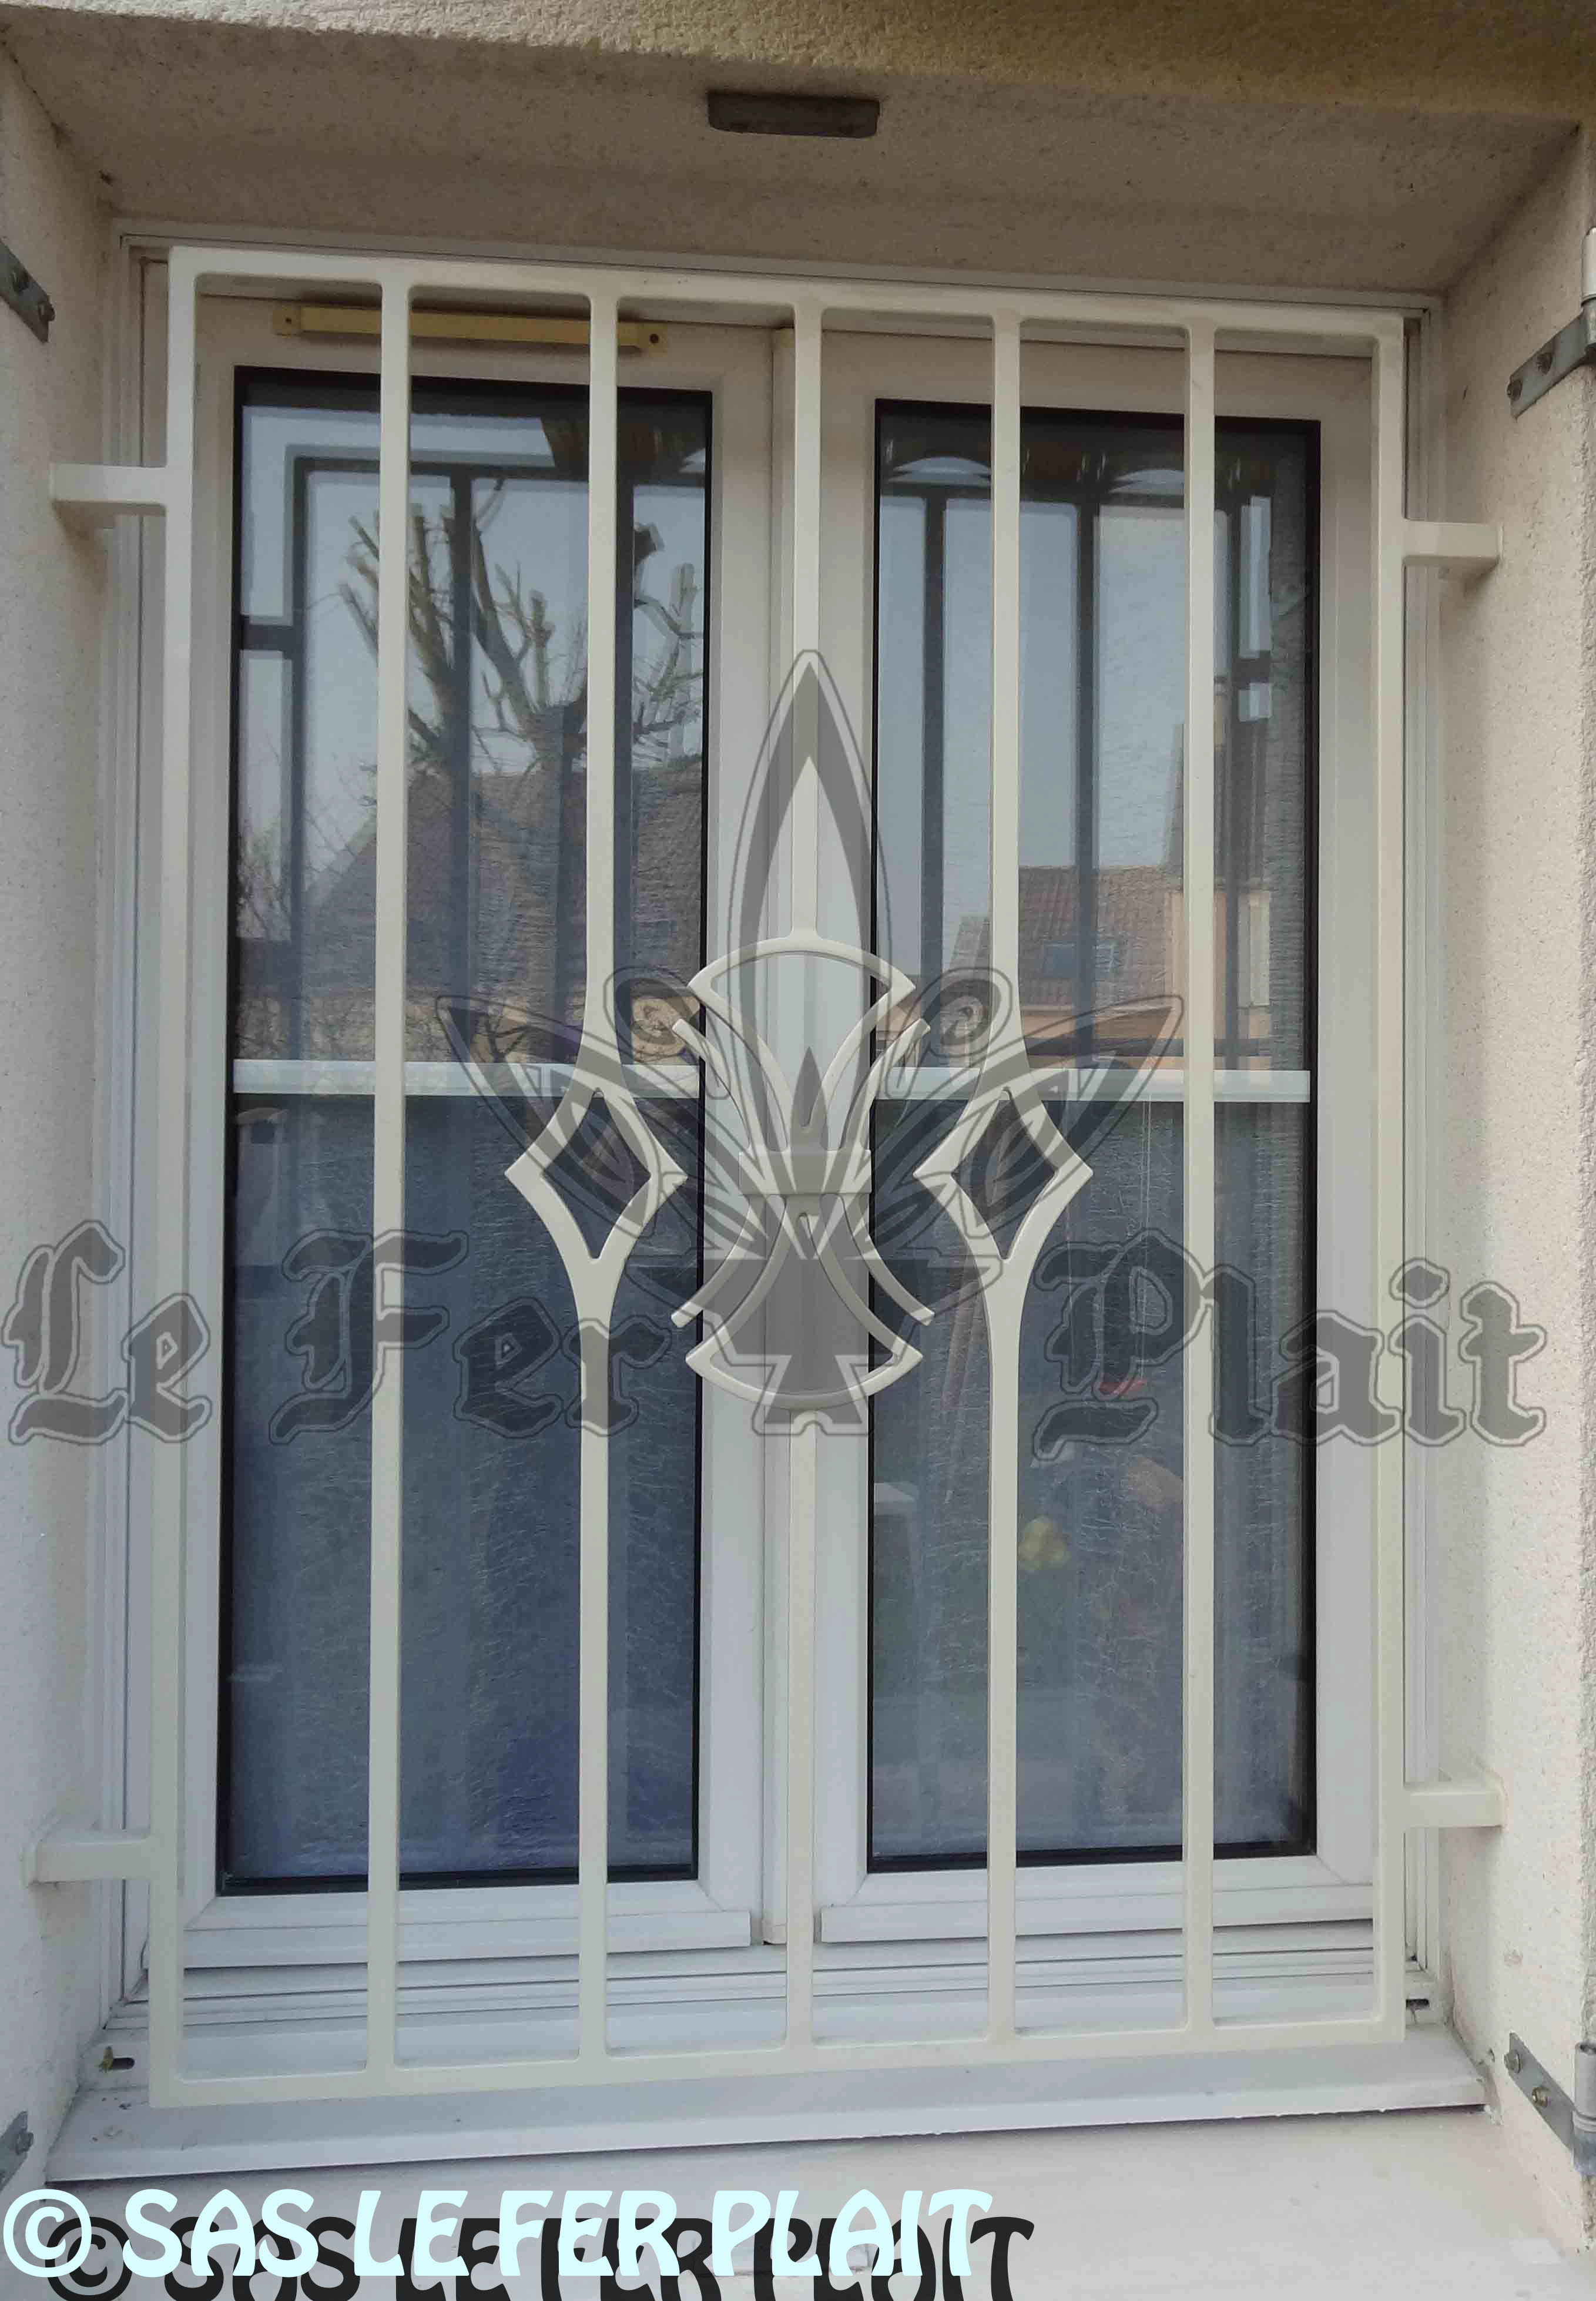 grille defense excellent grille azur with grille defense free rare grille dfense de fentre. Black Bedroom Furniture Sets. Home Design Ideas